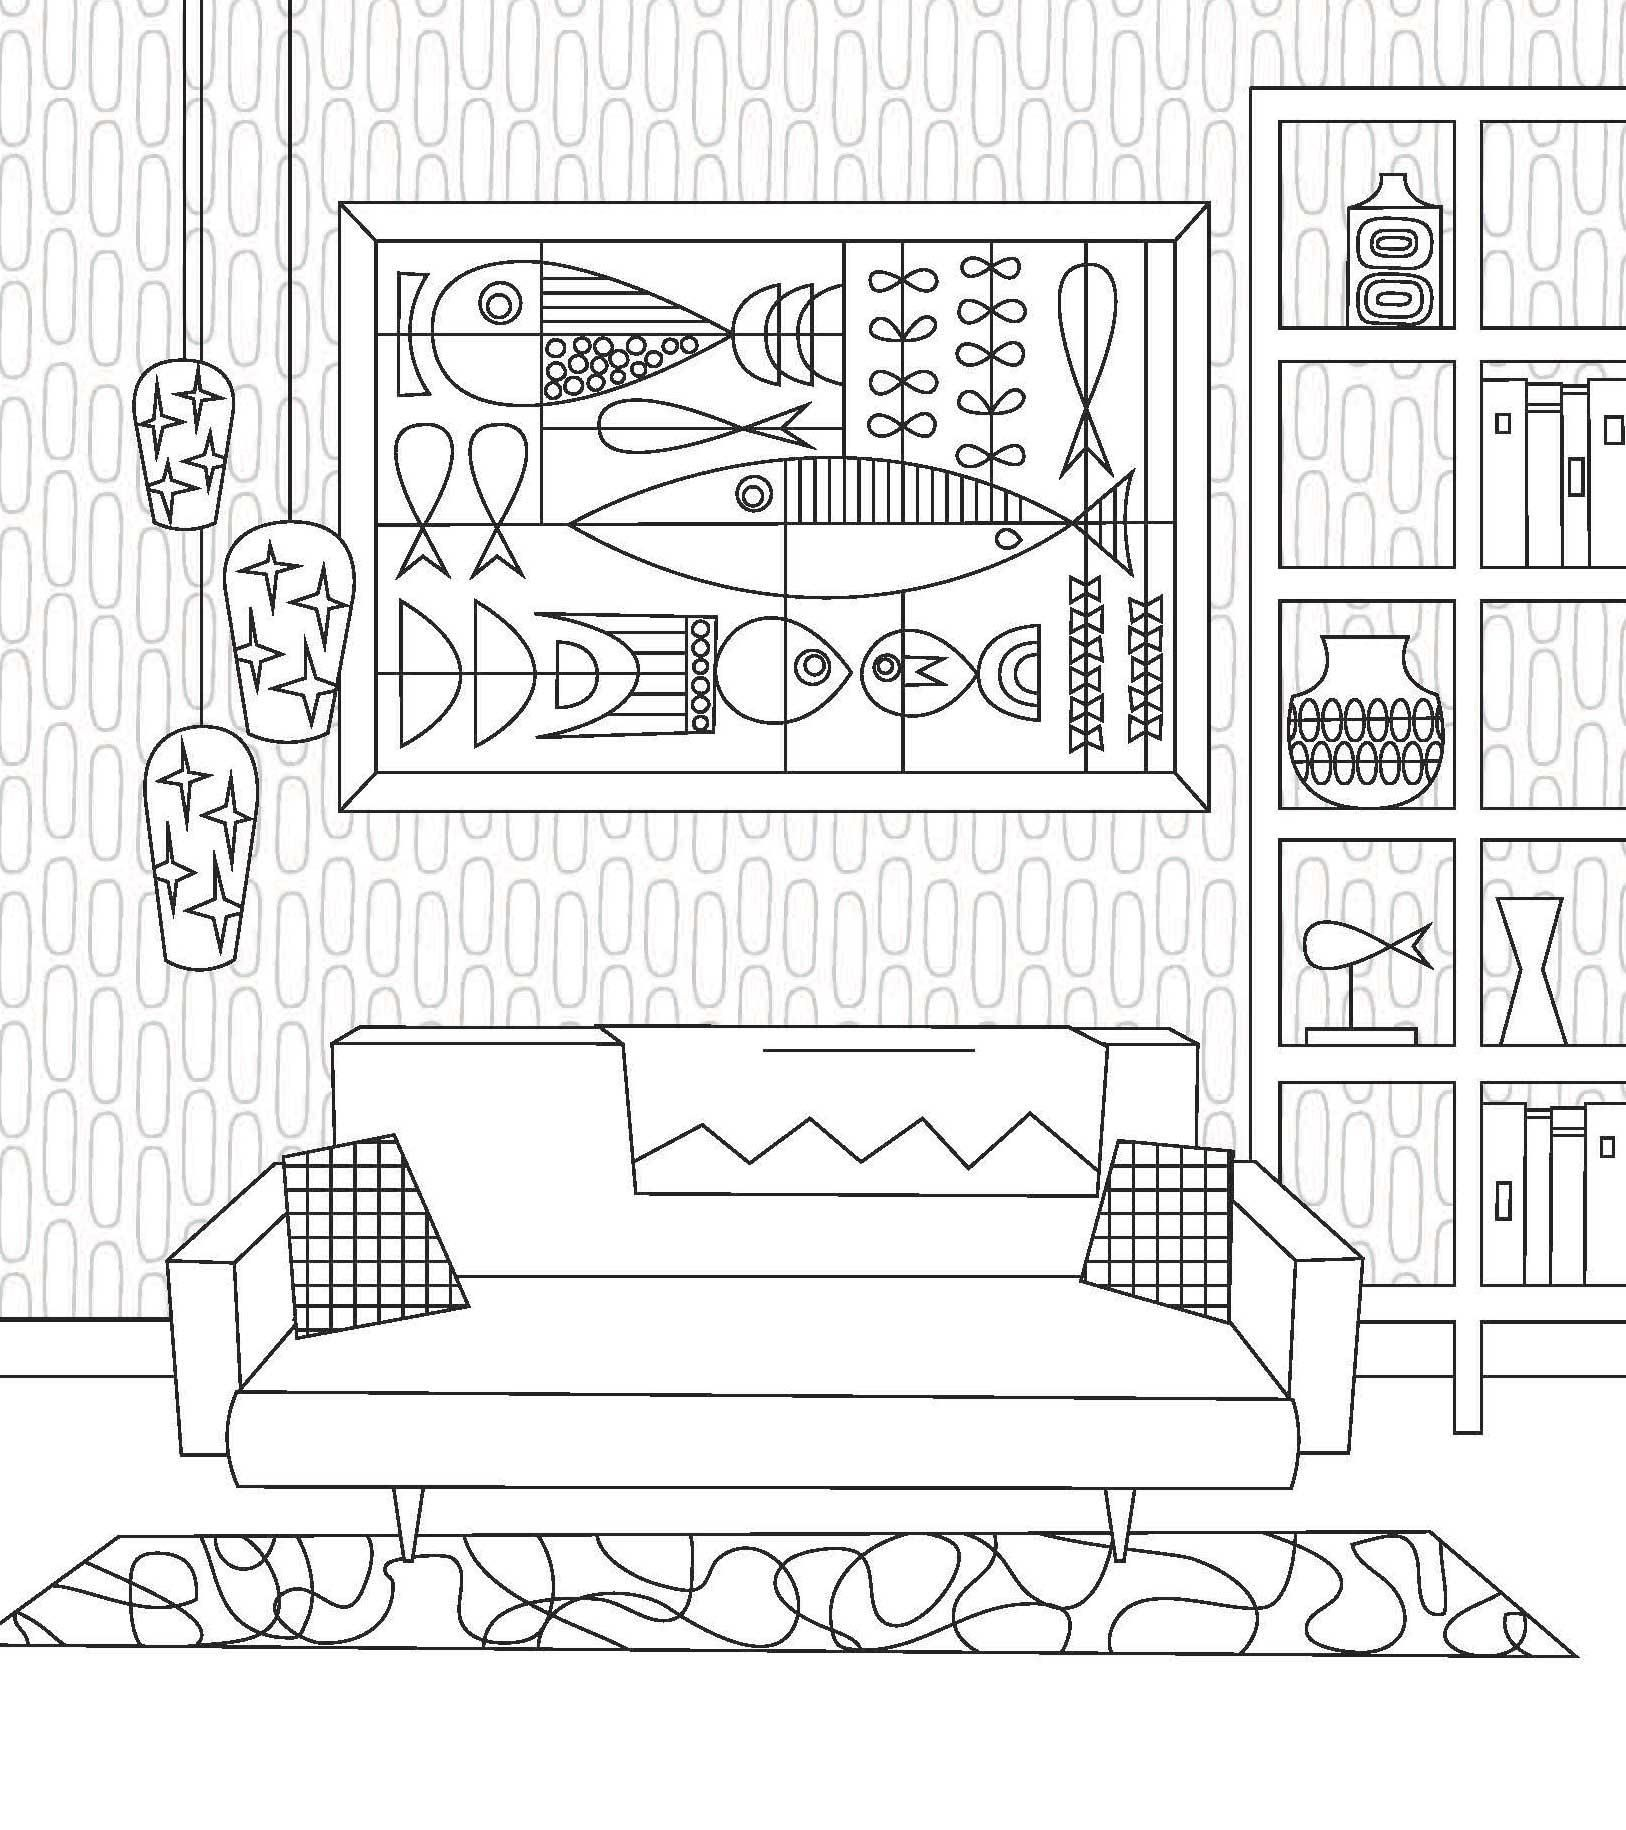 Living room coloring page - The Coloring Book Craze Has Grown To The Point Where Google Suggests Coloring Books For